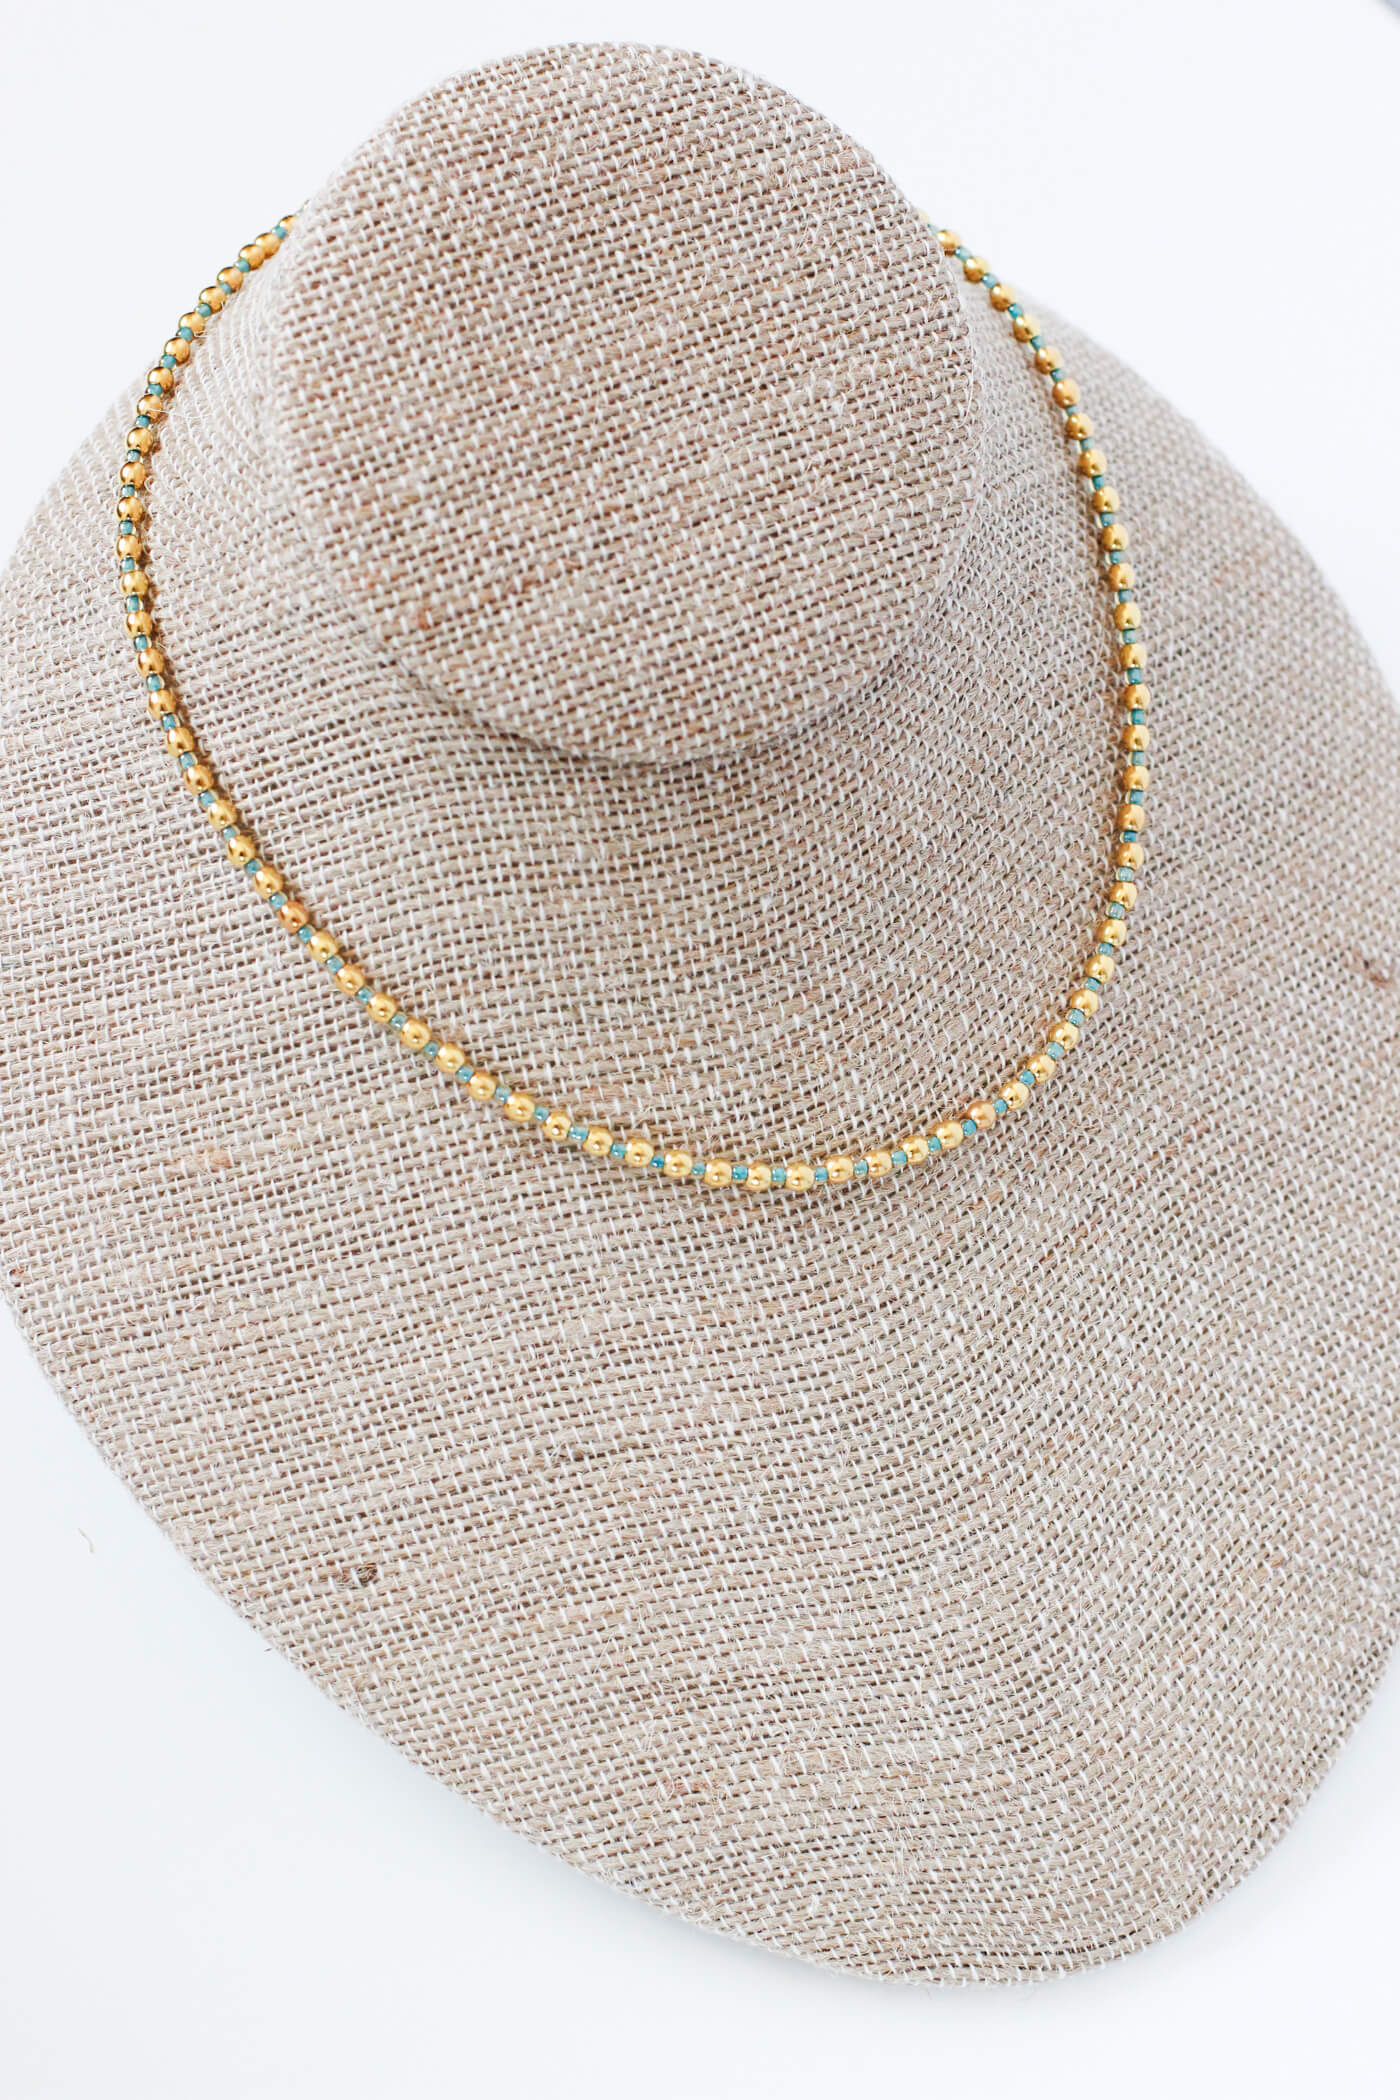 Women's Choker Necklace – Beaded Choker Necklace by Kaleidoscopes And Polka Dots